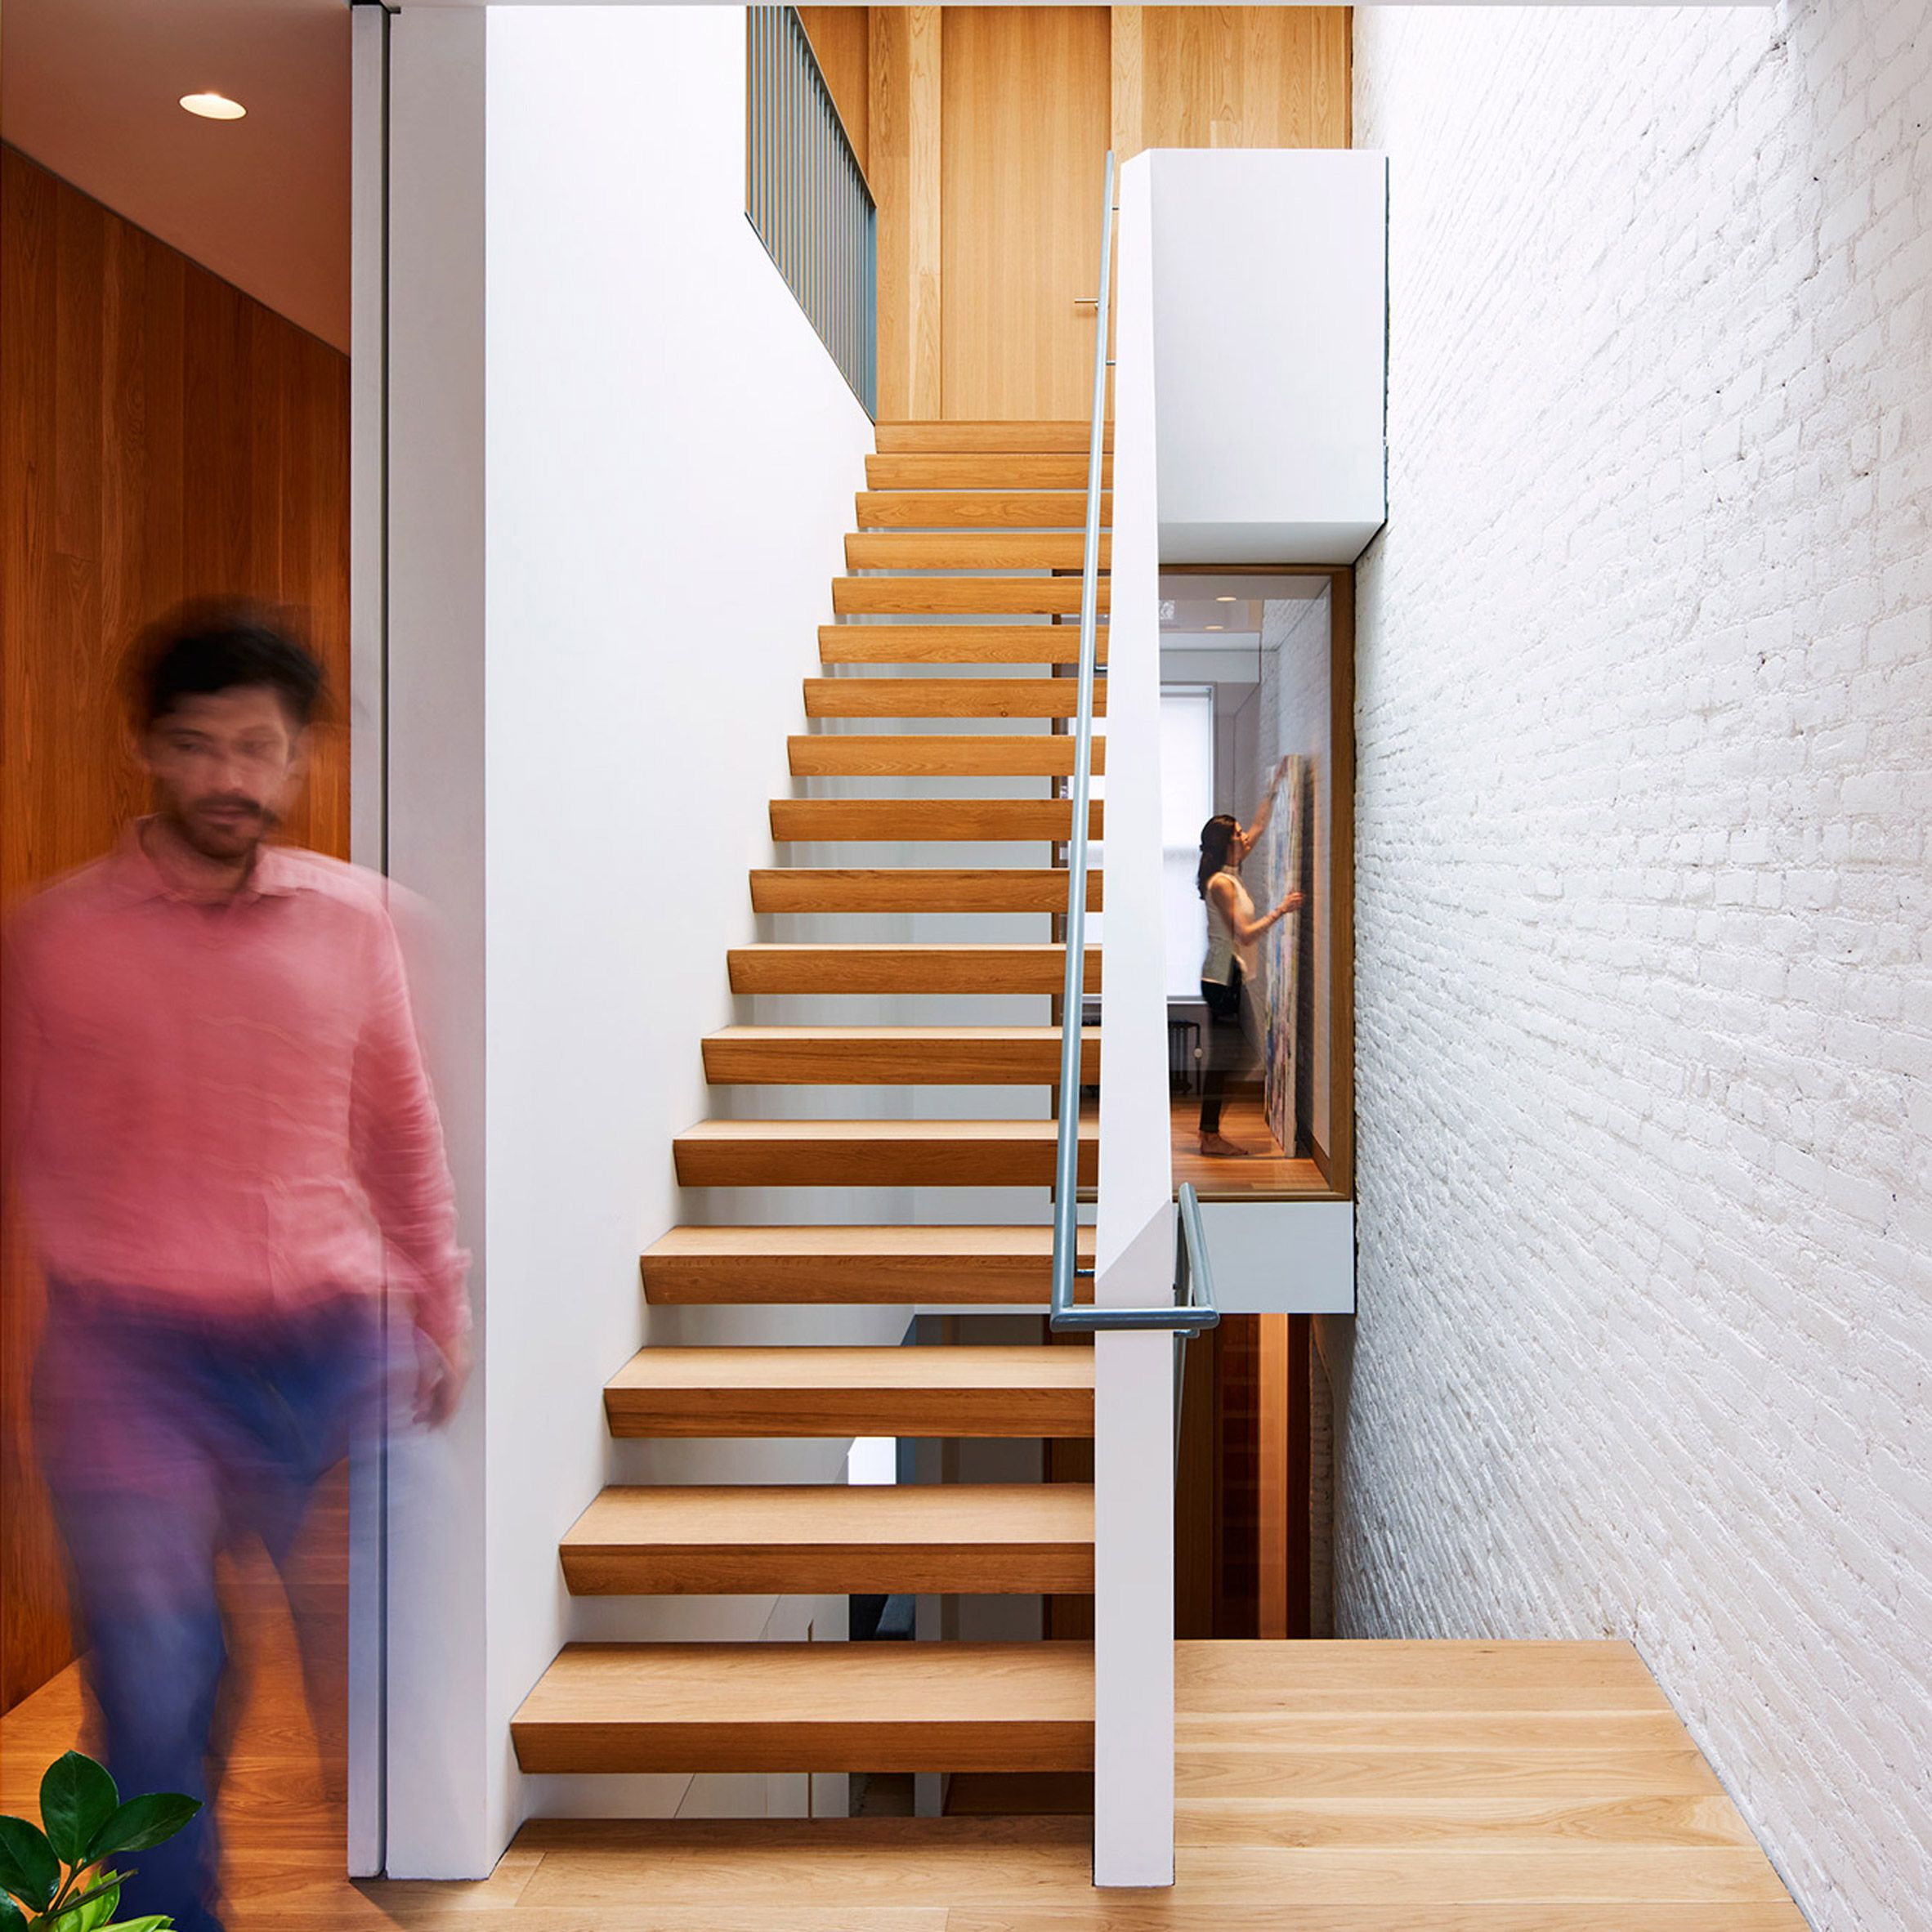 Sichtbetontreppe Außen Light And Air Architecture Has Overhauled A Brooklyn Home Using A